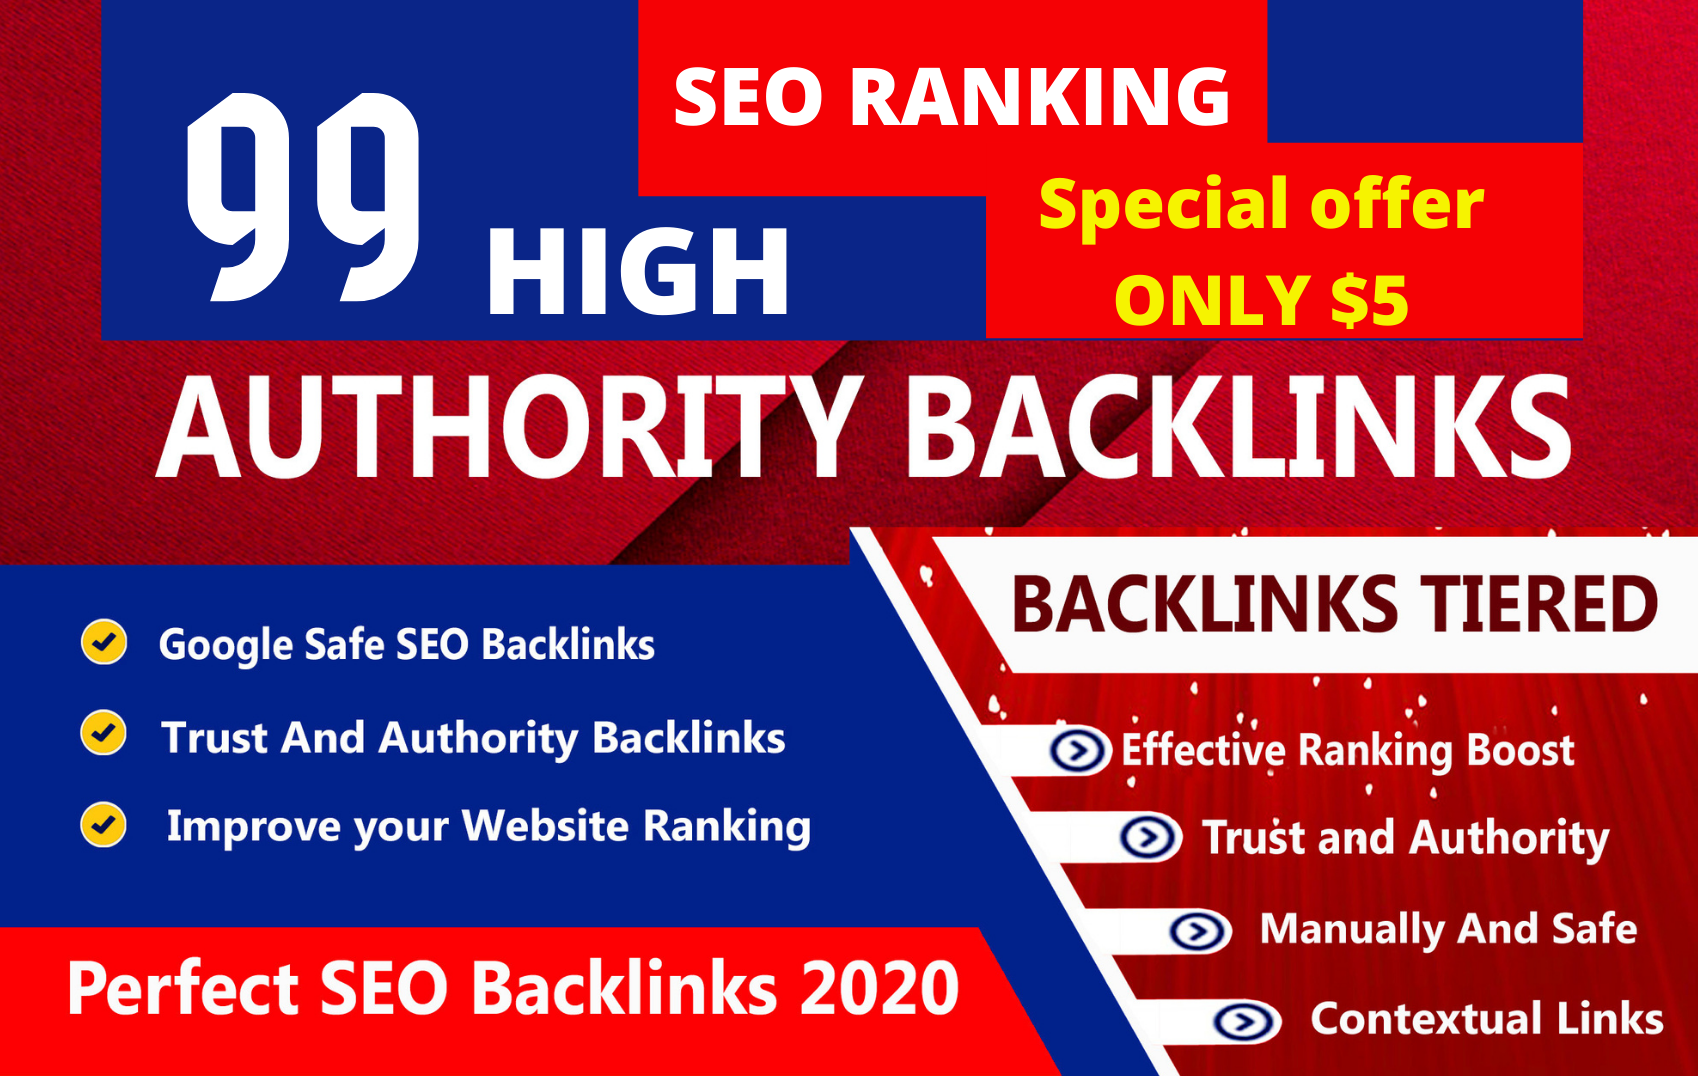 SEO backlinks white hat manual link building service for google top ranking